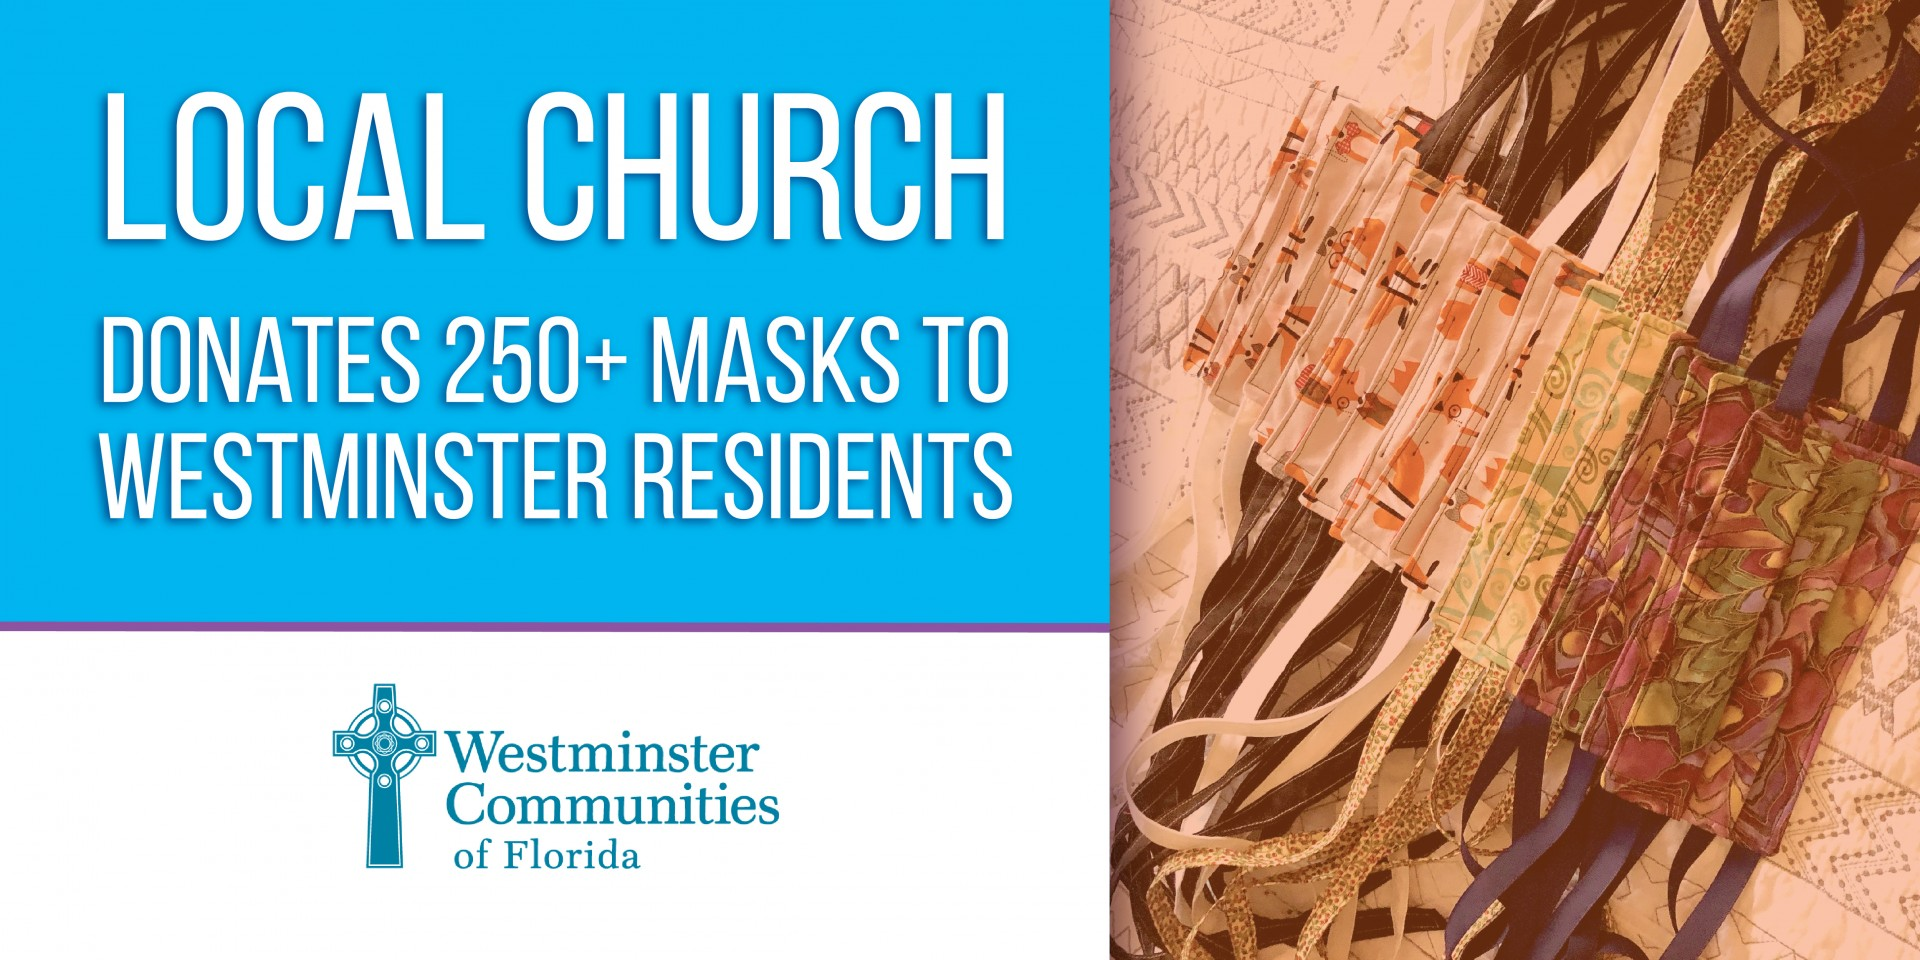 Local Church Donates Over 250 Masks to Westminster Residents